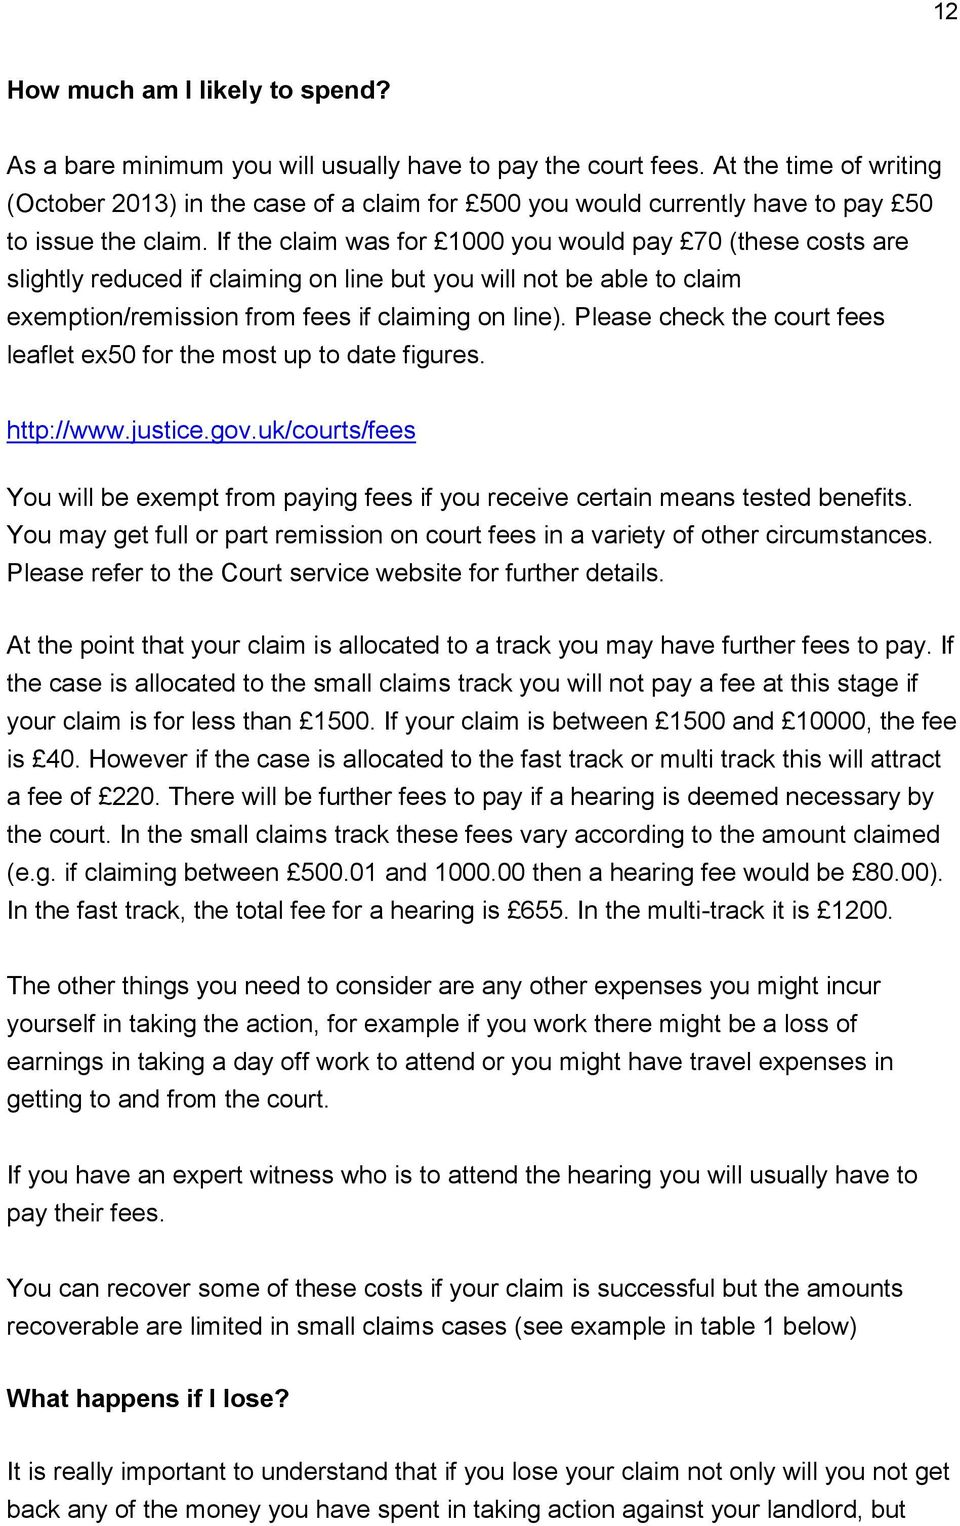 If the claim was for 1000 you would pay 70 (these costs are slightly reduced if claiming on line but you will not be able to claim exemption/remission from fees if claiming on line).